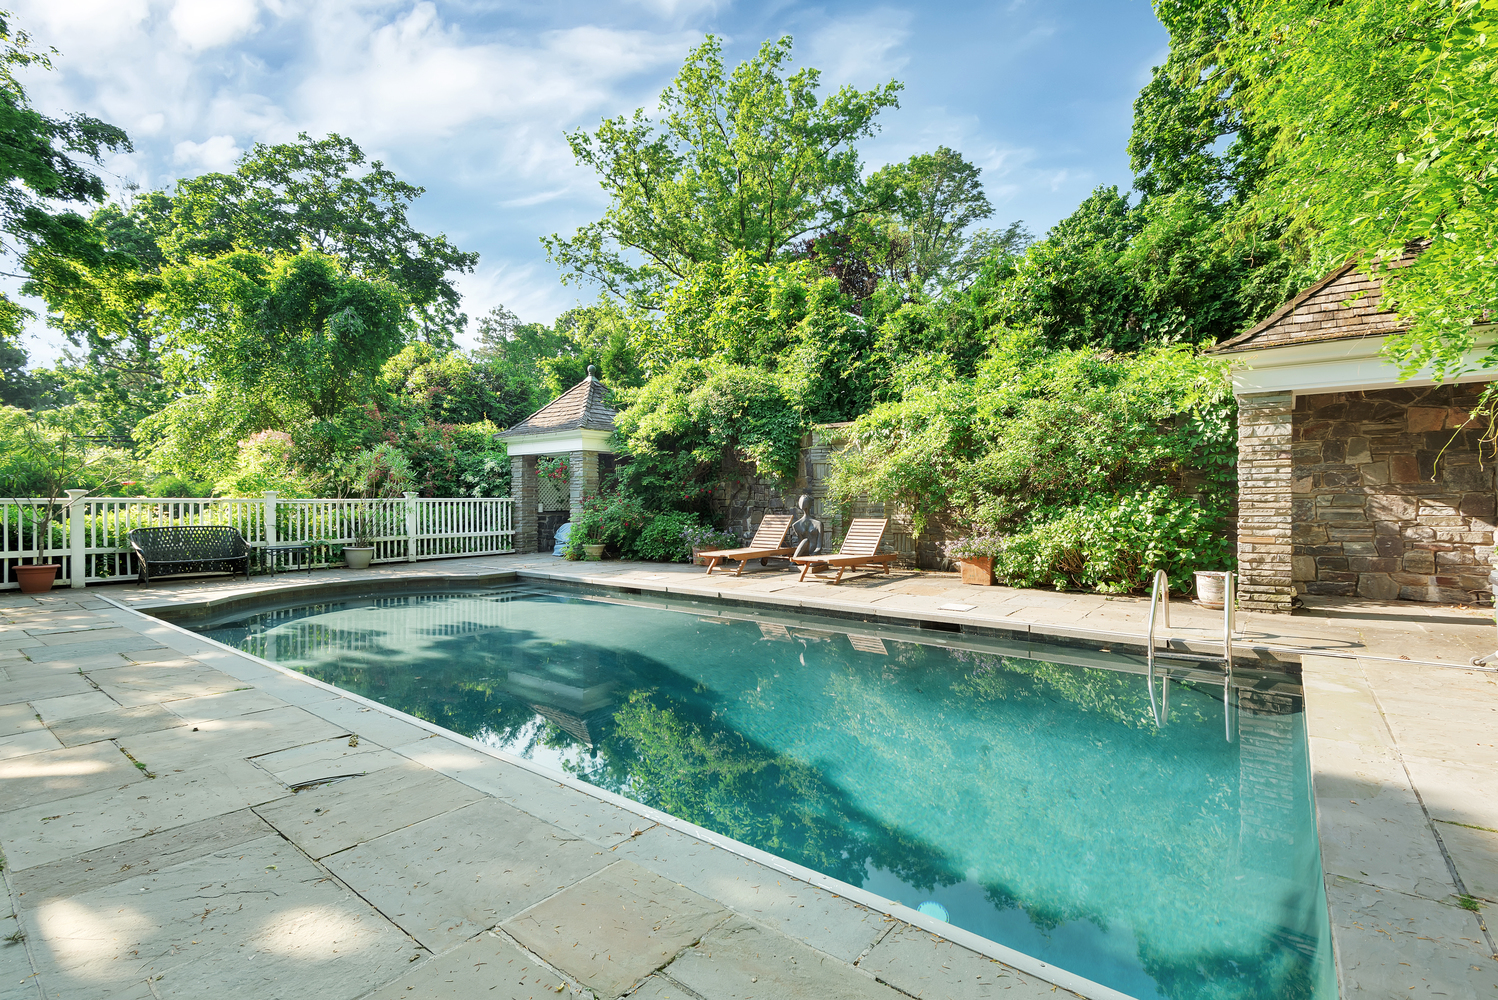 Check Out These NYC Houses With Pools That Are On The Market: